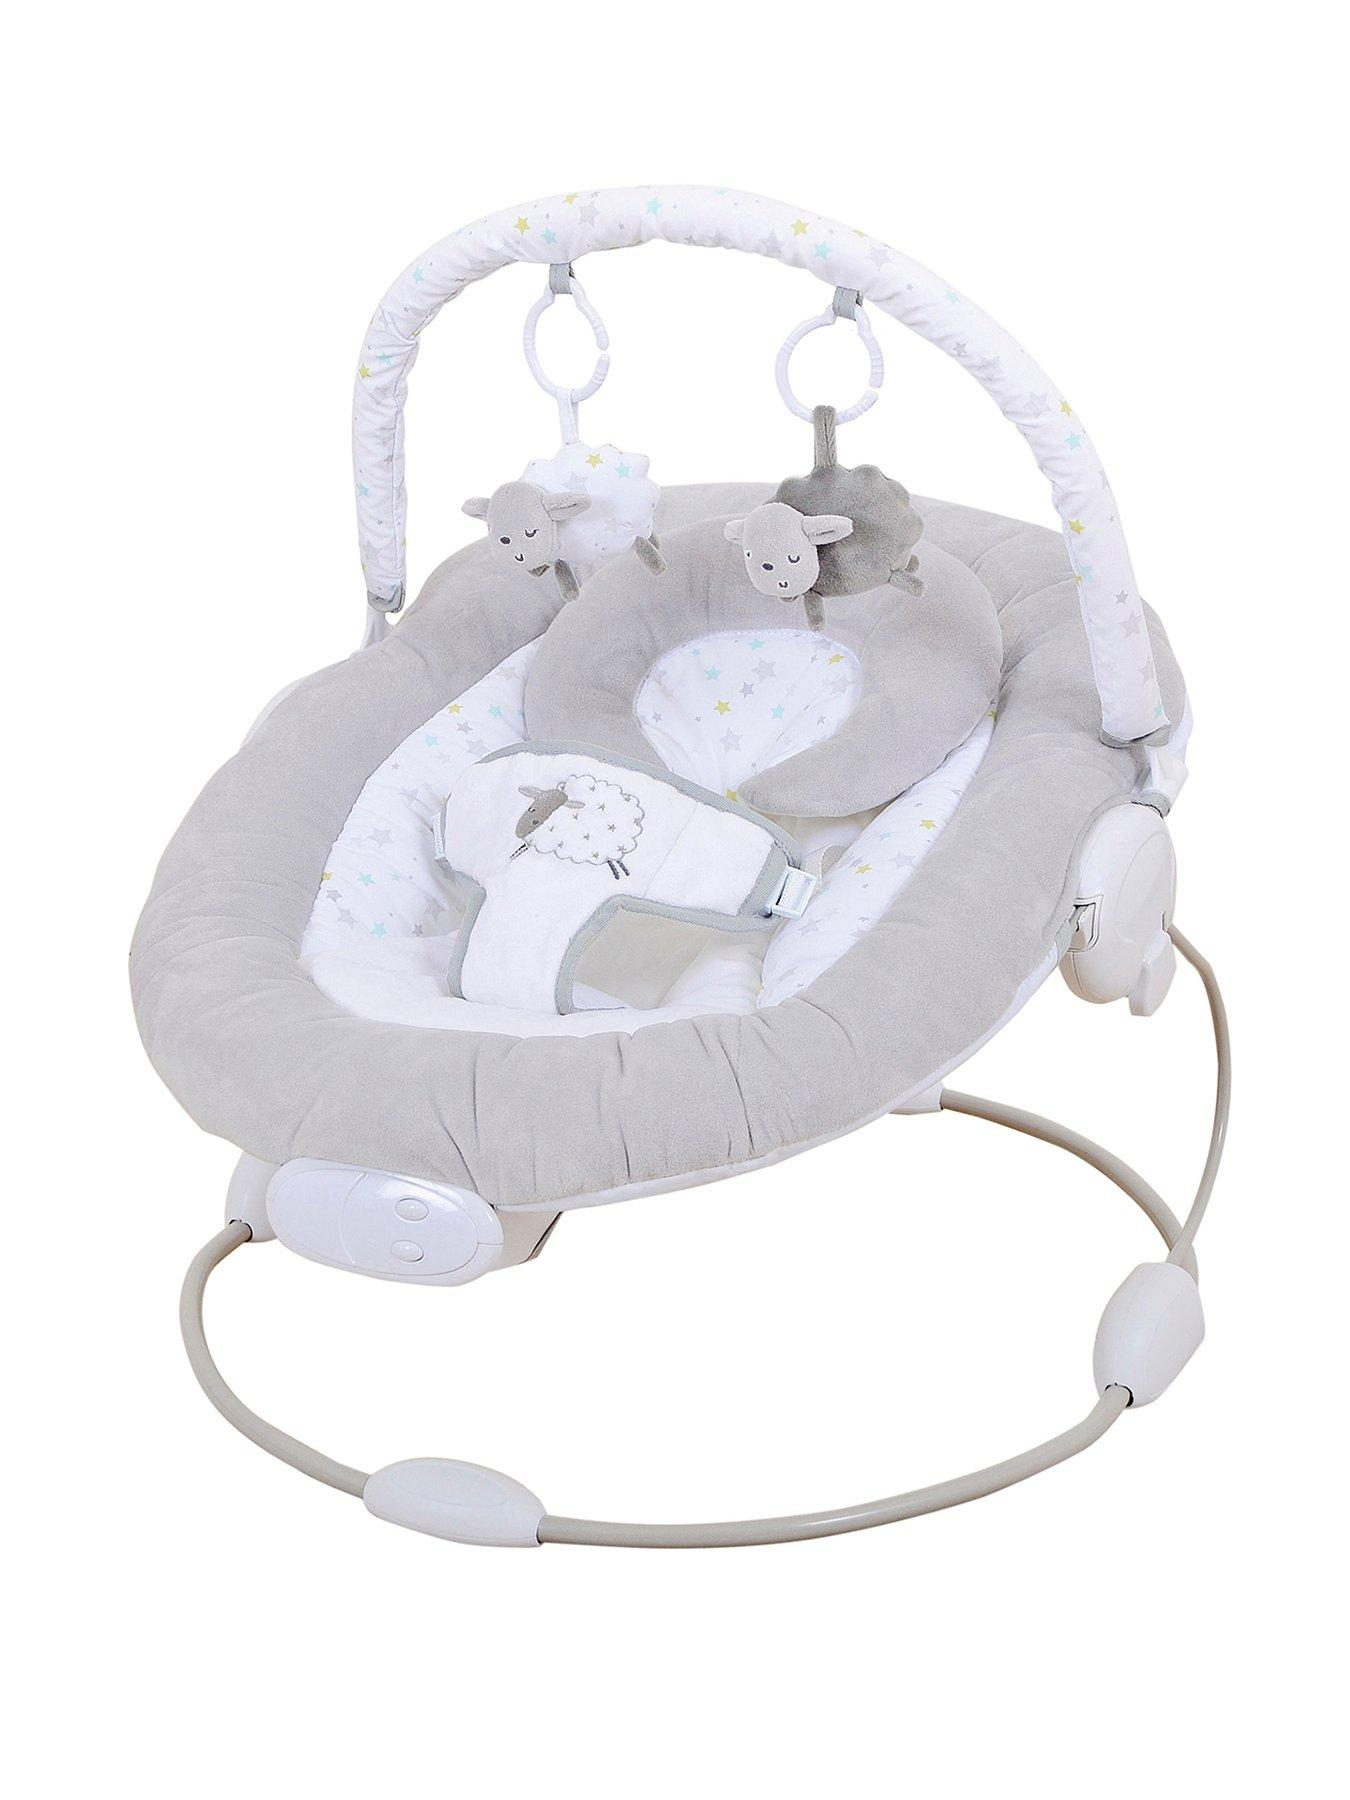 SUMMER INFANT BABY CHILD POP N JUMP PORTABLE BOUNCER SEAT WAREHOUSE CLEARANCE